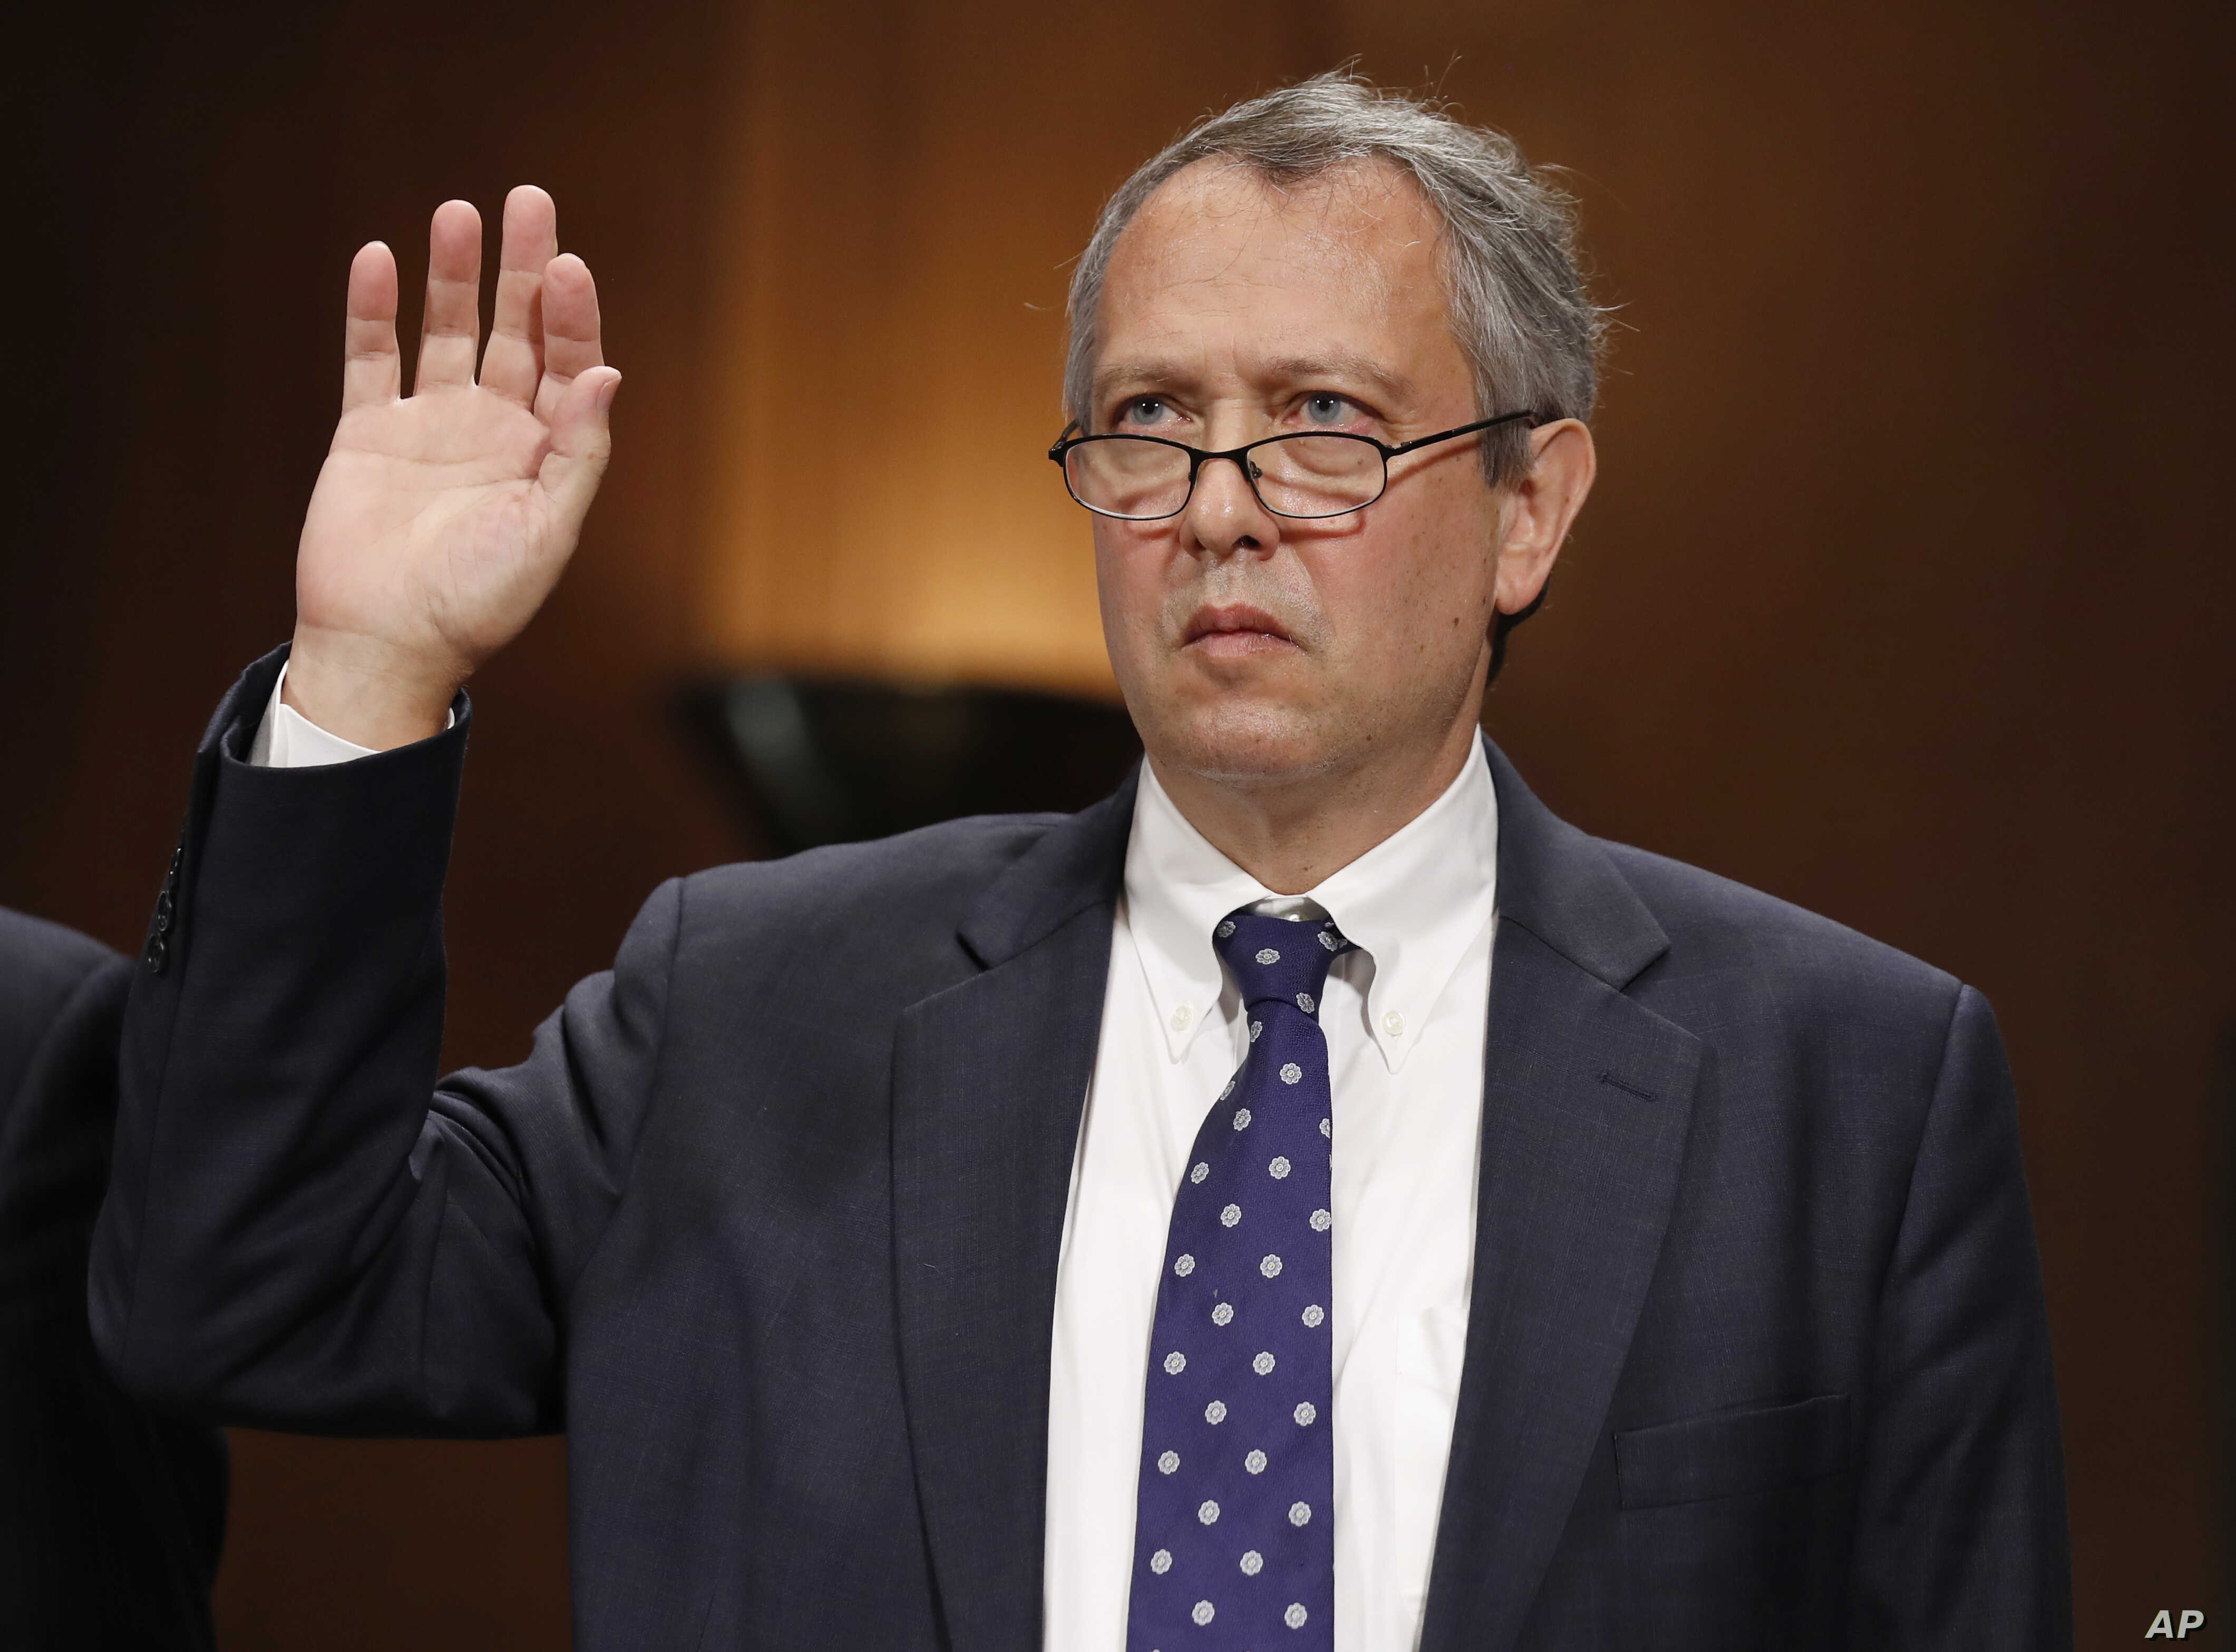 FILE - In this Sept. 20, 2017, file photo, Thomas  Farr is sworn in during a Senate Judiciary Committee hearing on his nomination to be a District Judge on the United States District Court for the Eastern District of North Carolina, on Capitol Hill i